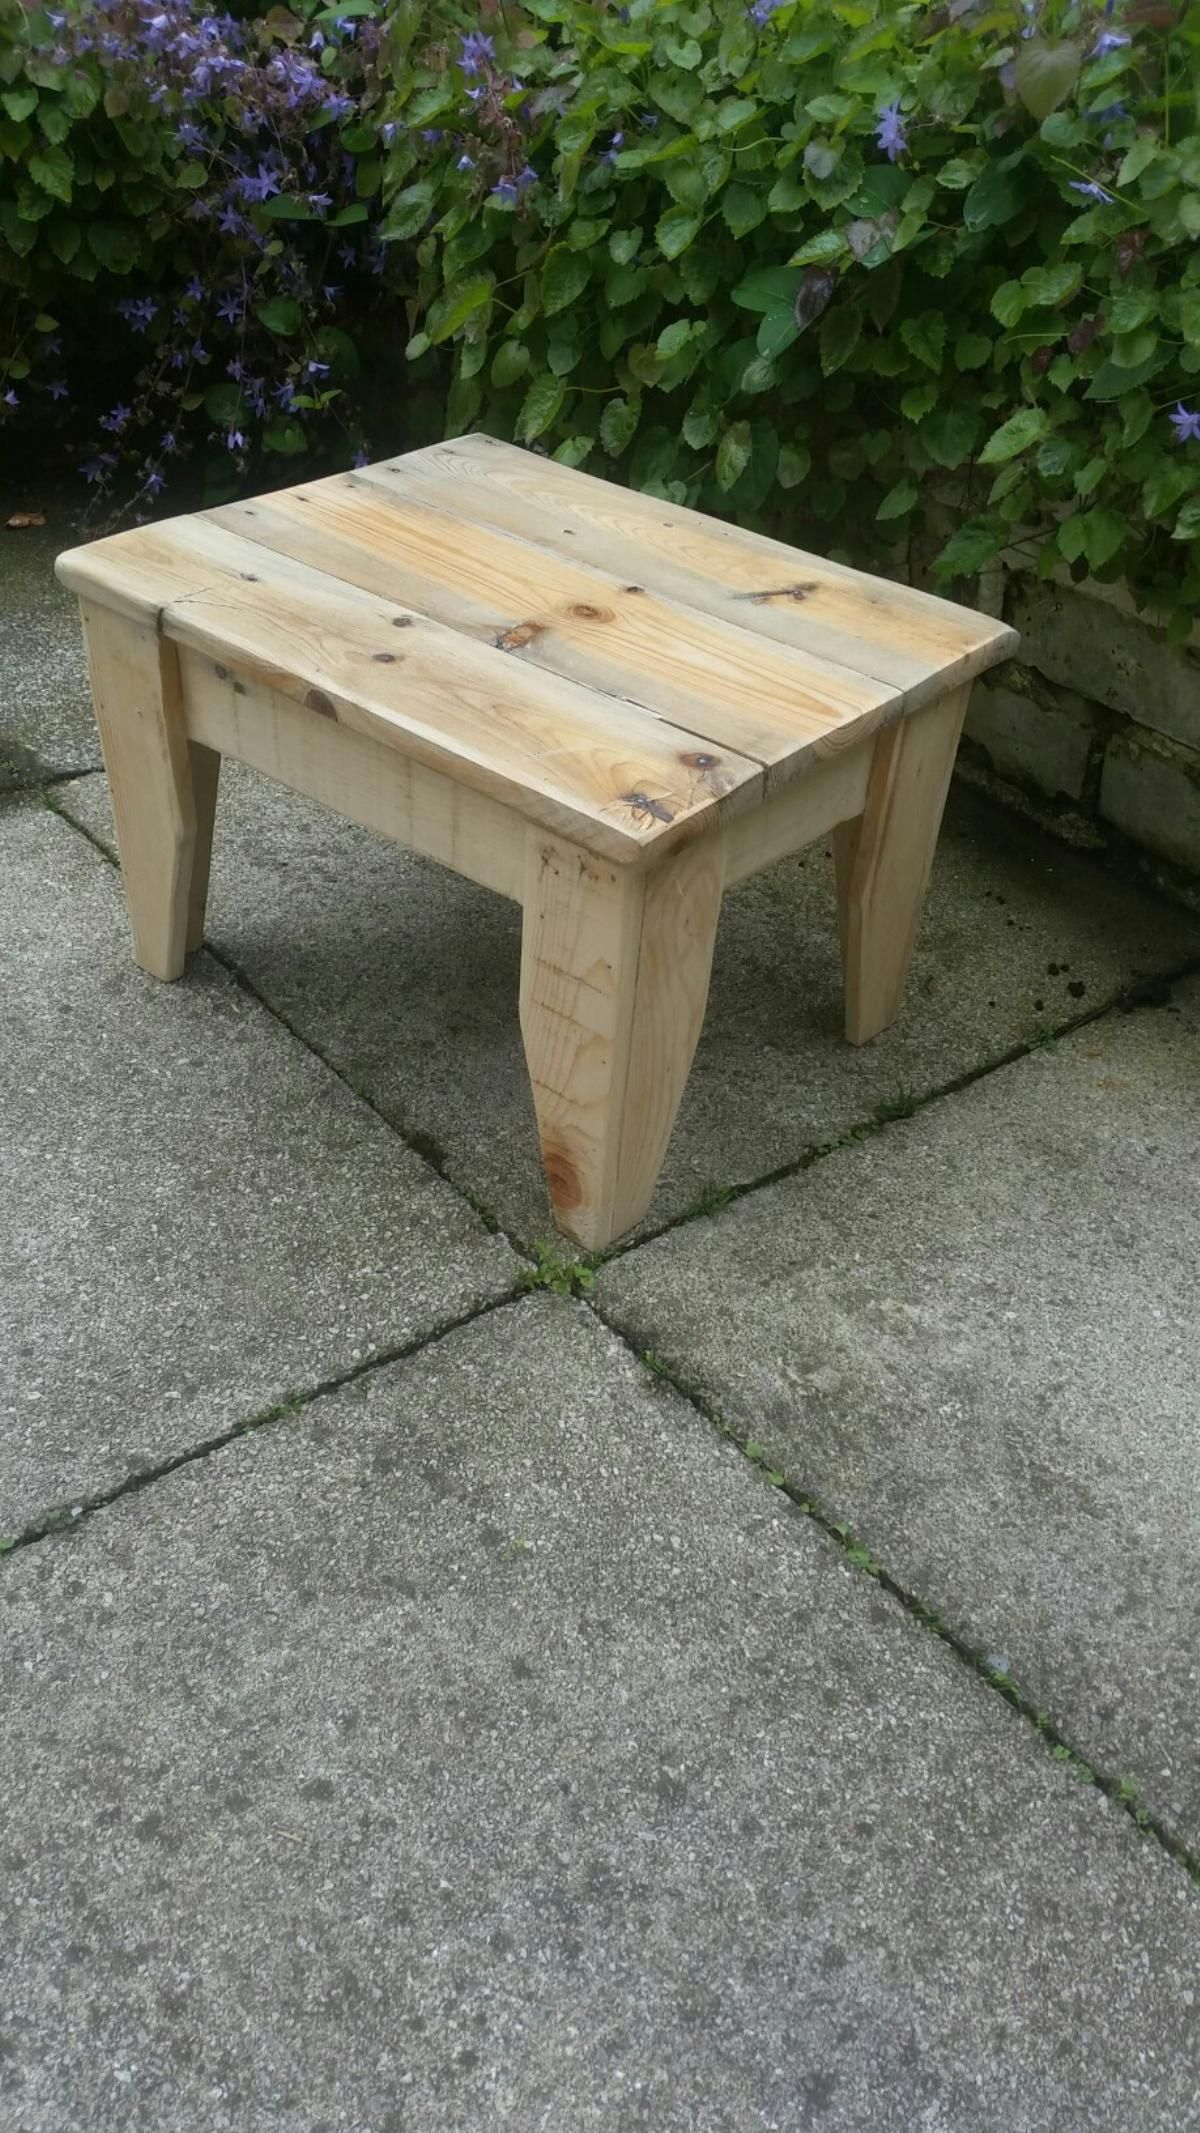 Buy Wood Stool For Gbp  Lovely Quality Stool Made